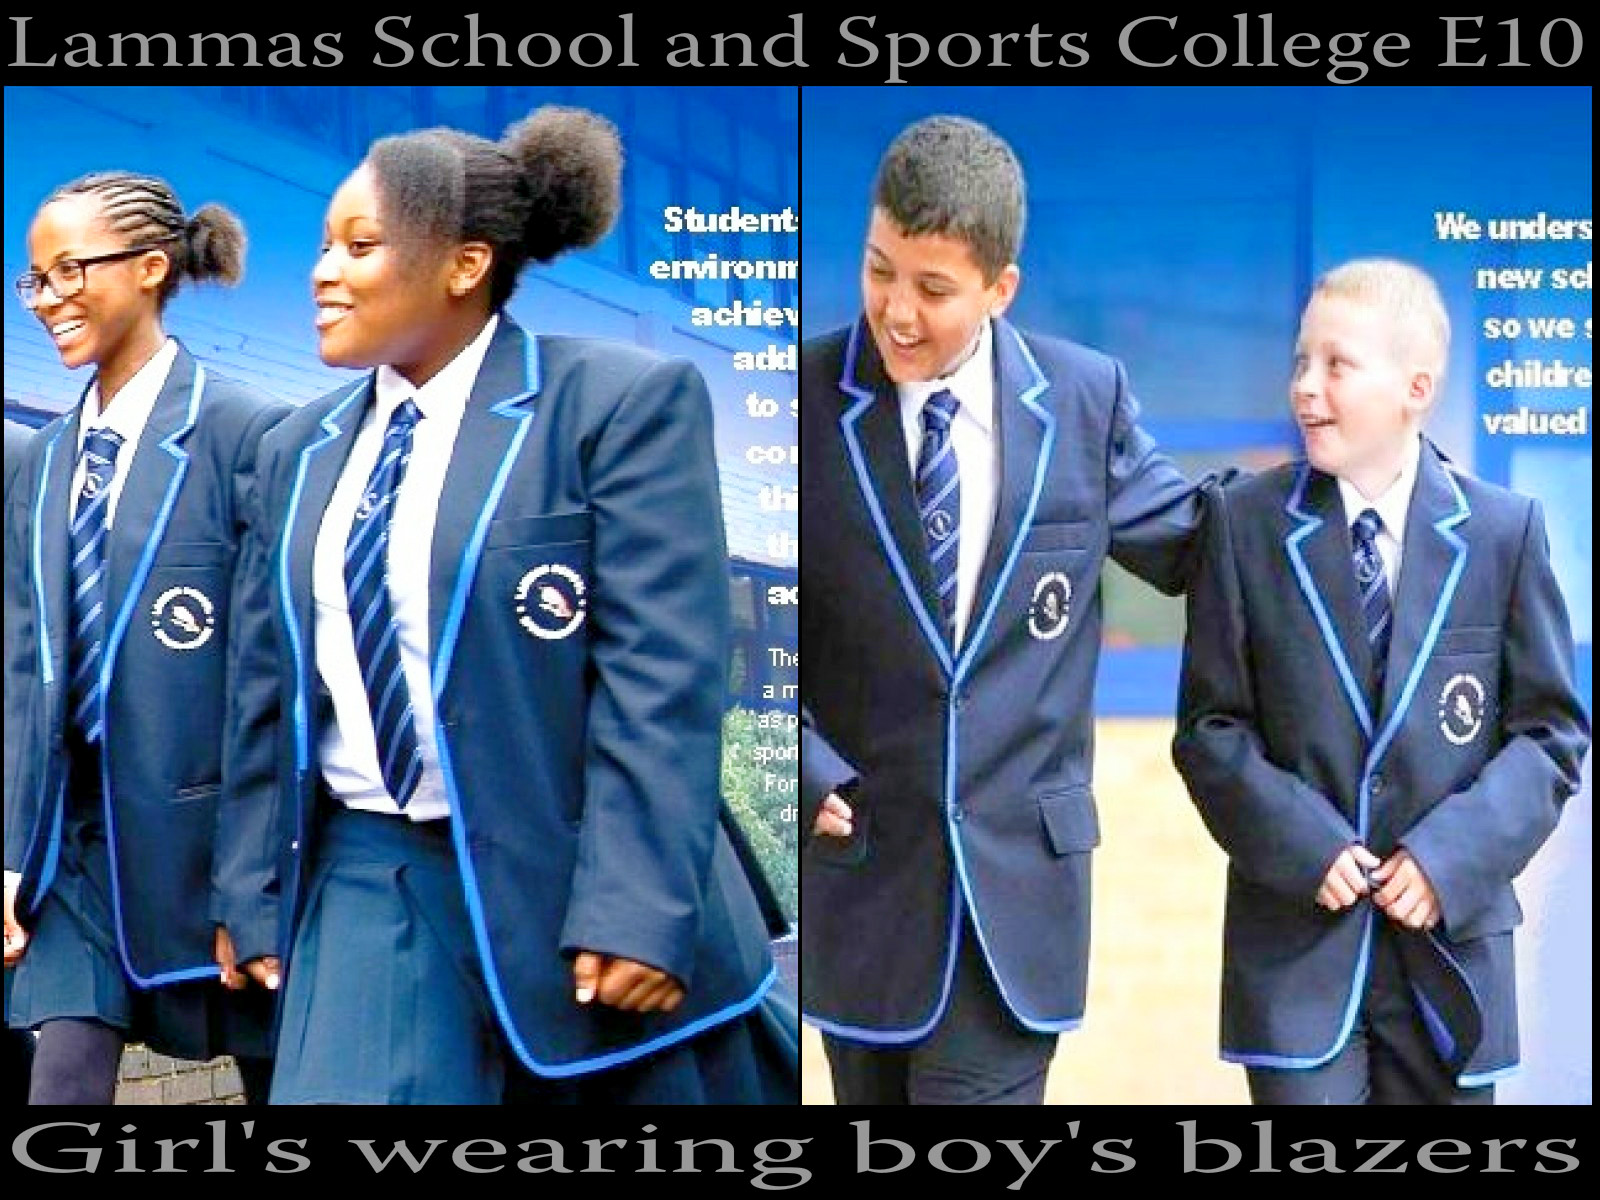 Lammas School and Sports College